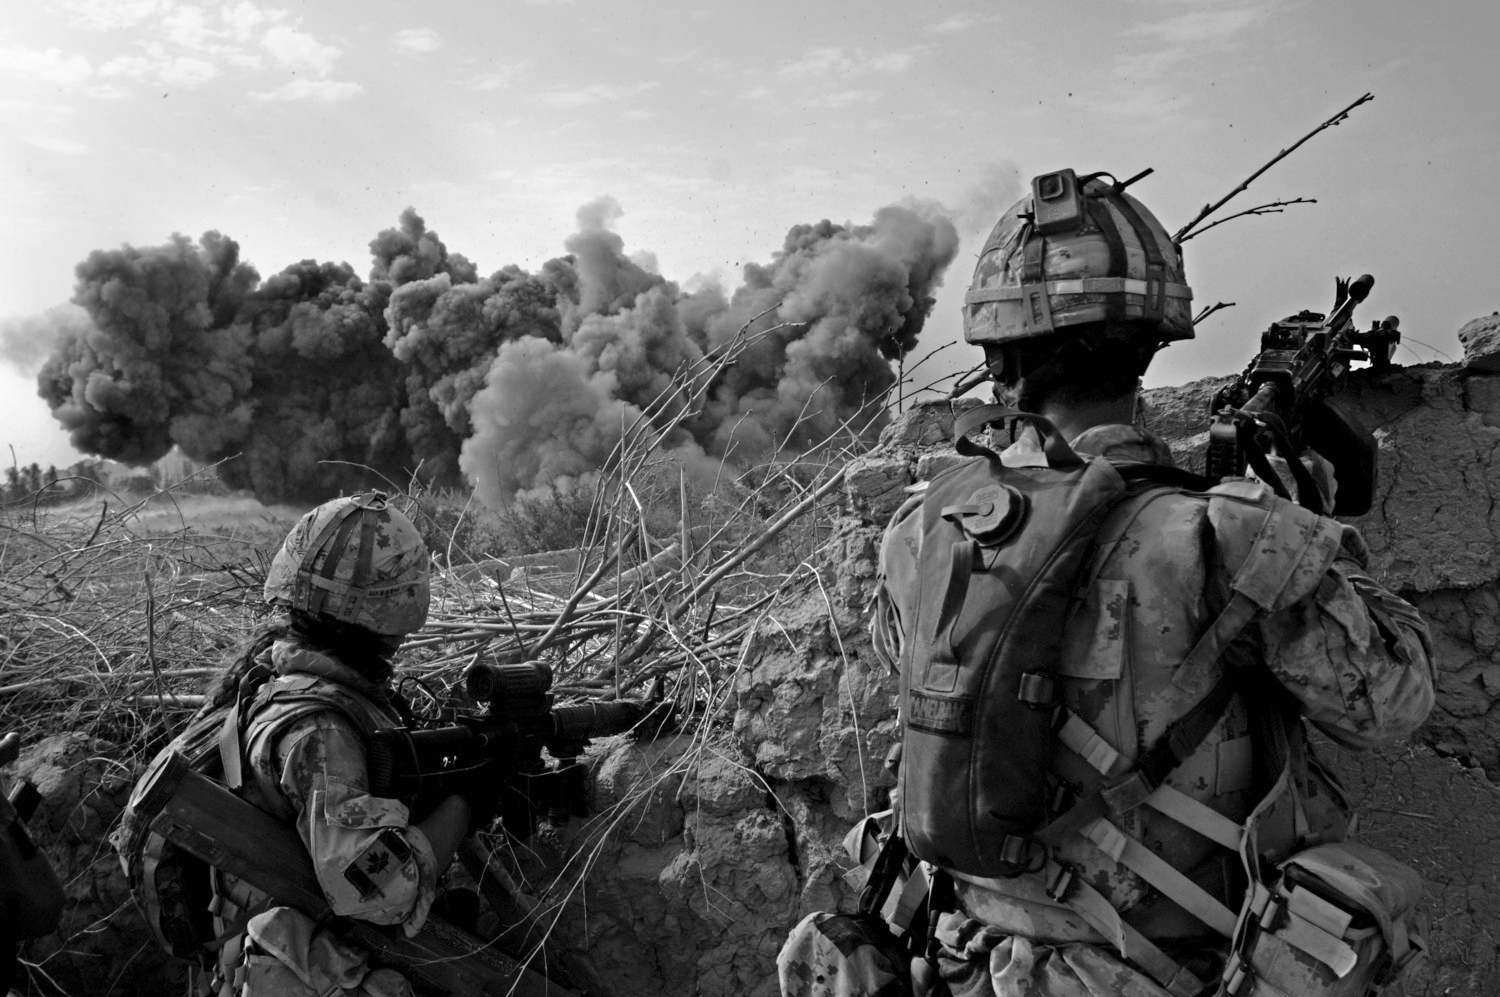 Canadian soldiers freeze and look in the direction of a massive air strike on an insurgent position just over 100 meters form their position during a heavy fighting in the vicinity of Pashmul in theZhari District, Kandahar Province, Afghanistan.July 27, 2008 © Louie Palu/ZUMAPRESS.com